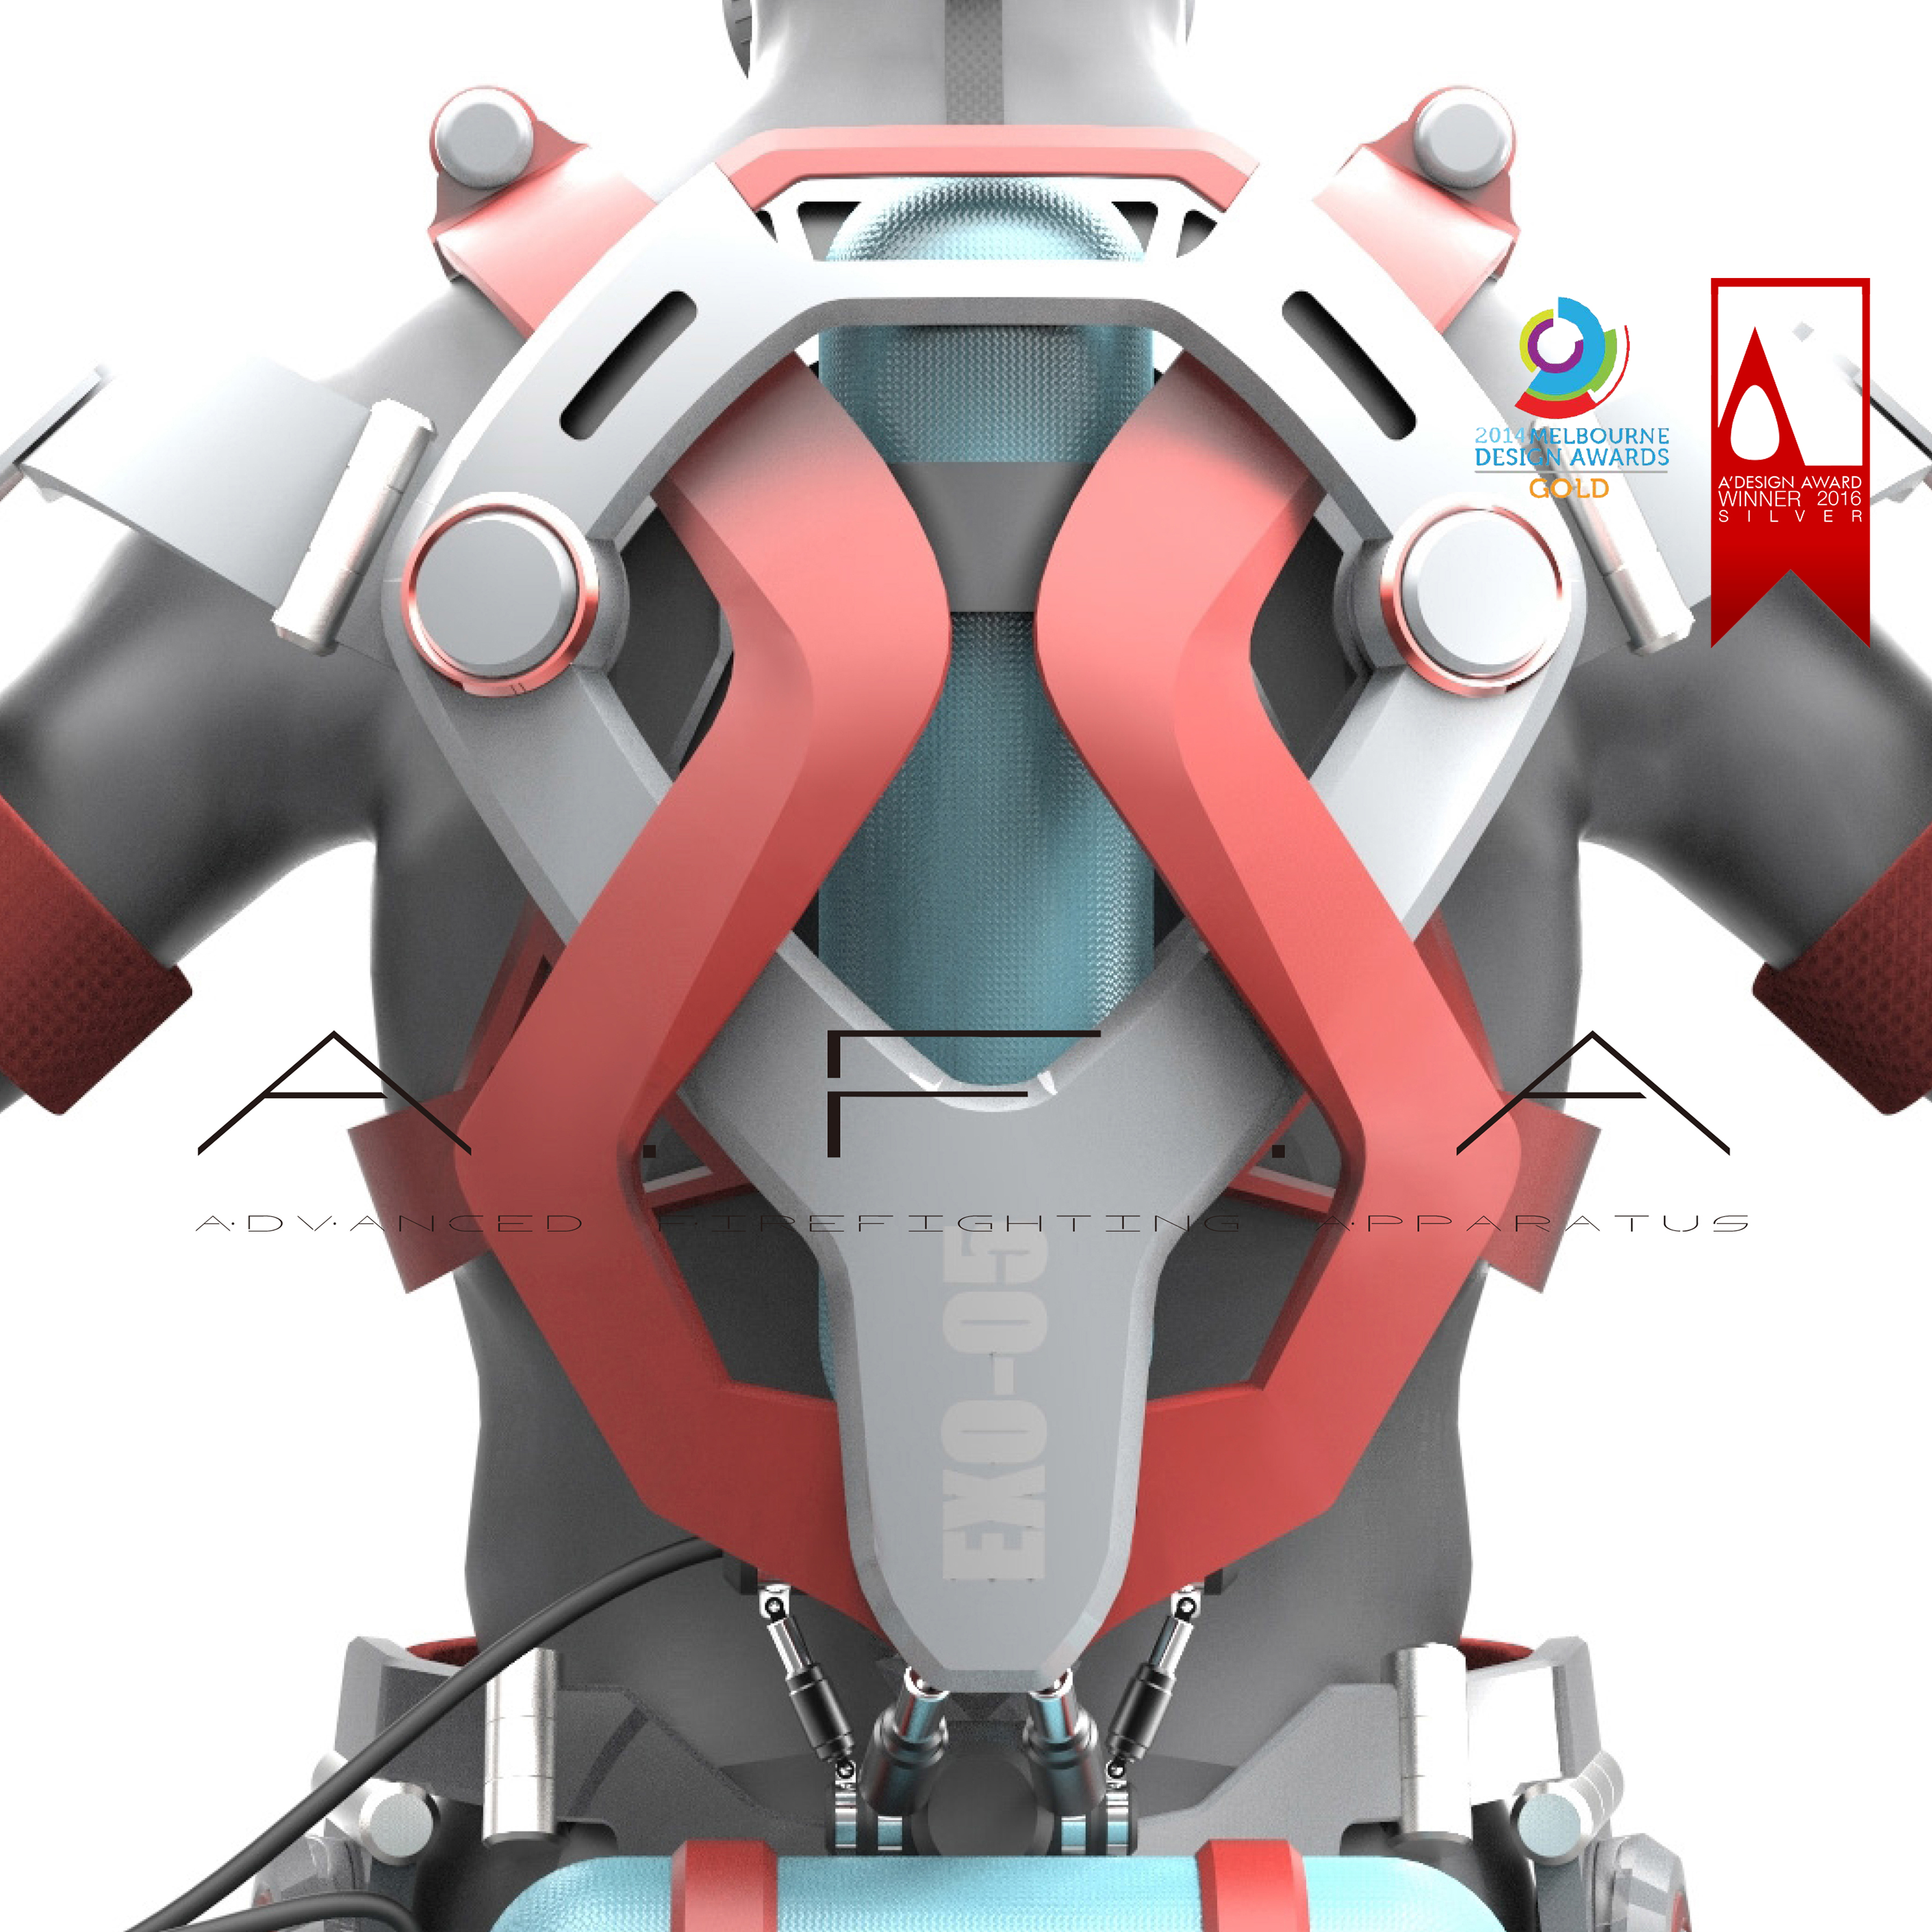 A.F.A.-Powered Exoskeleton Suit for Firefighter